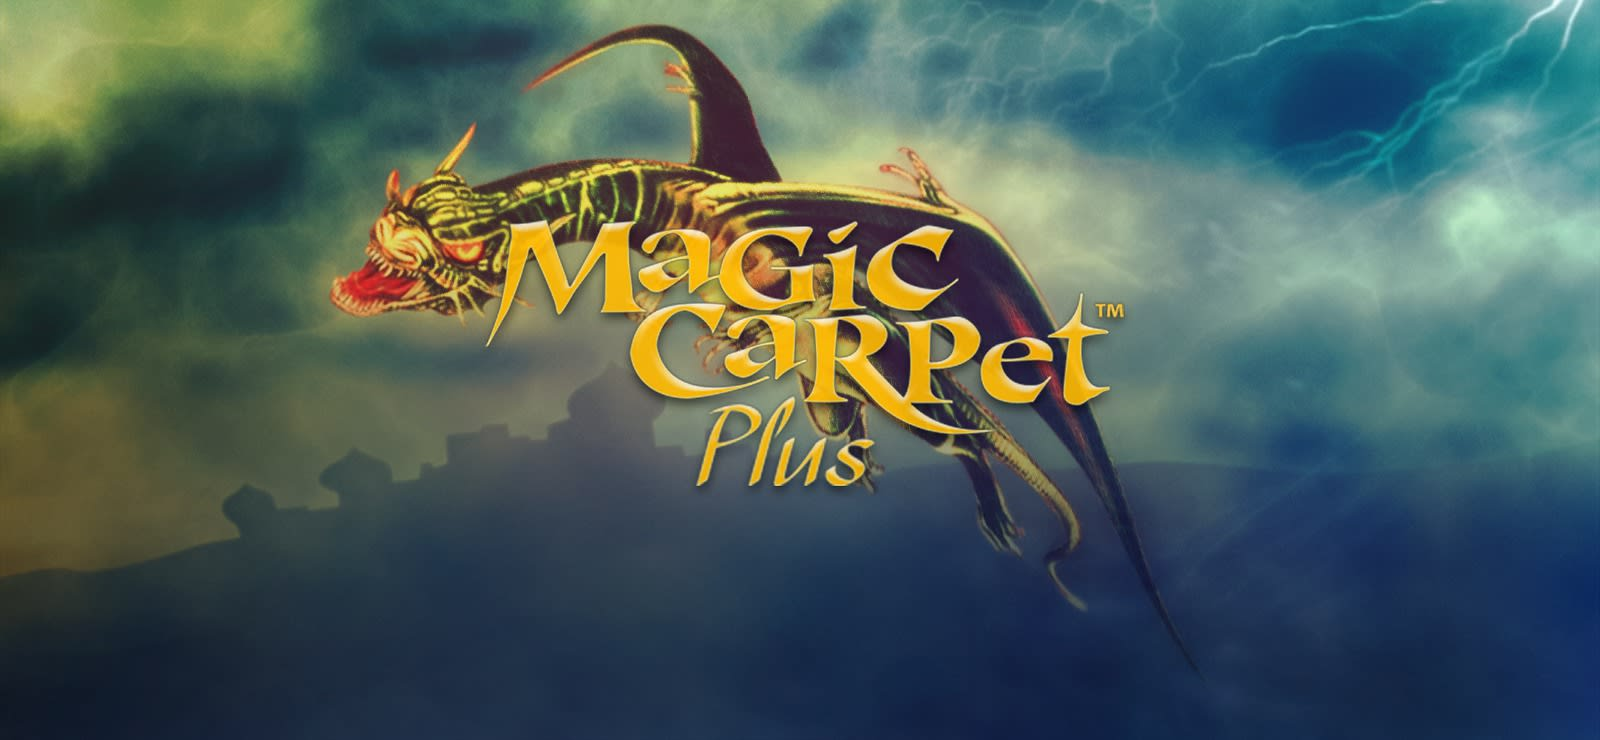 Magic Carpet Plus